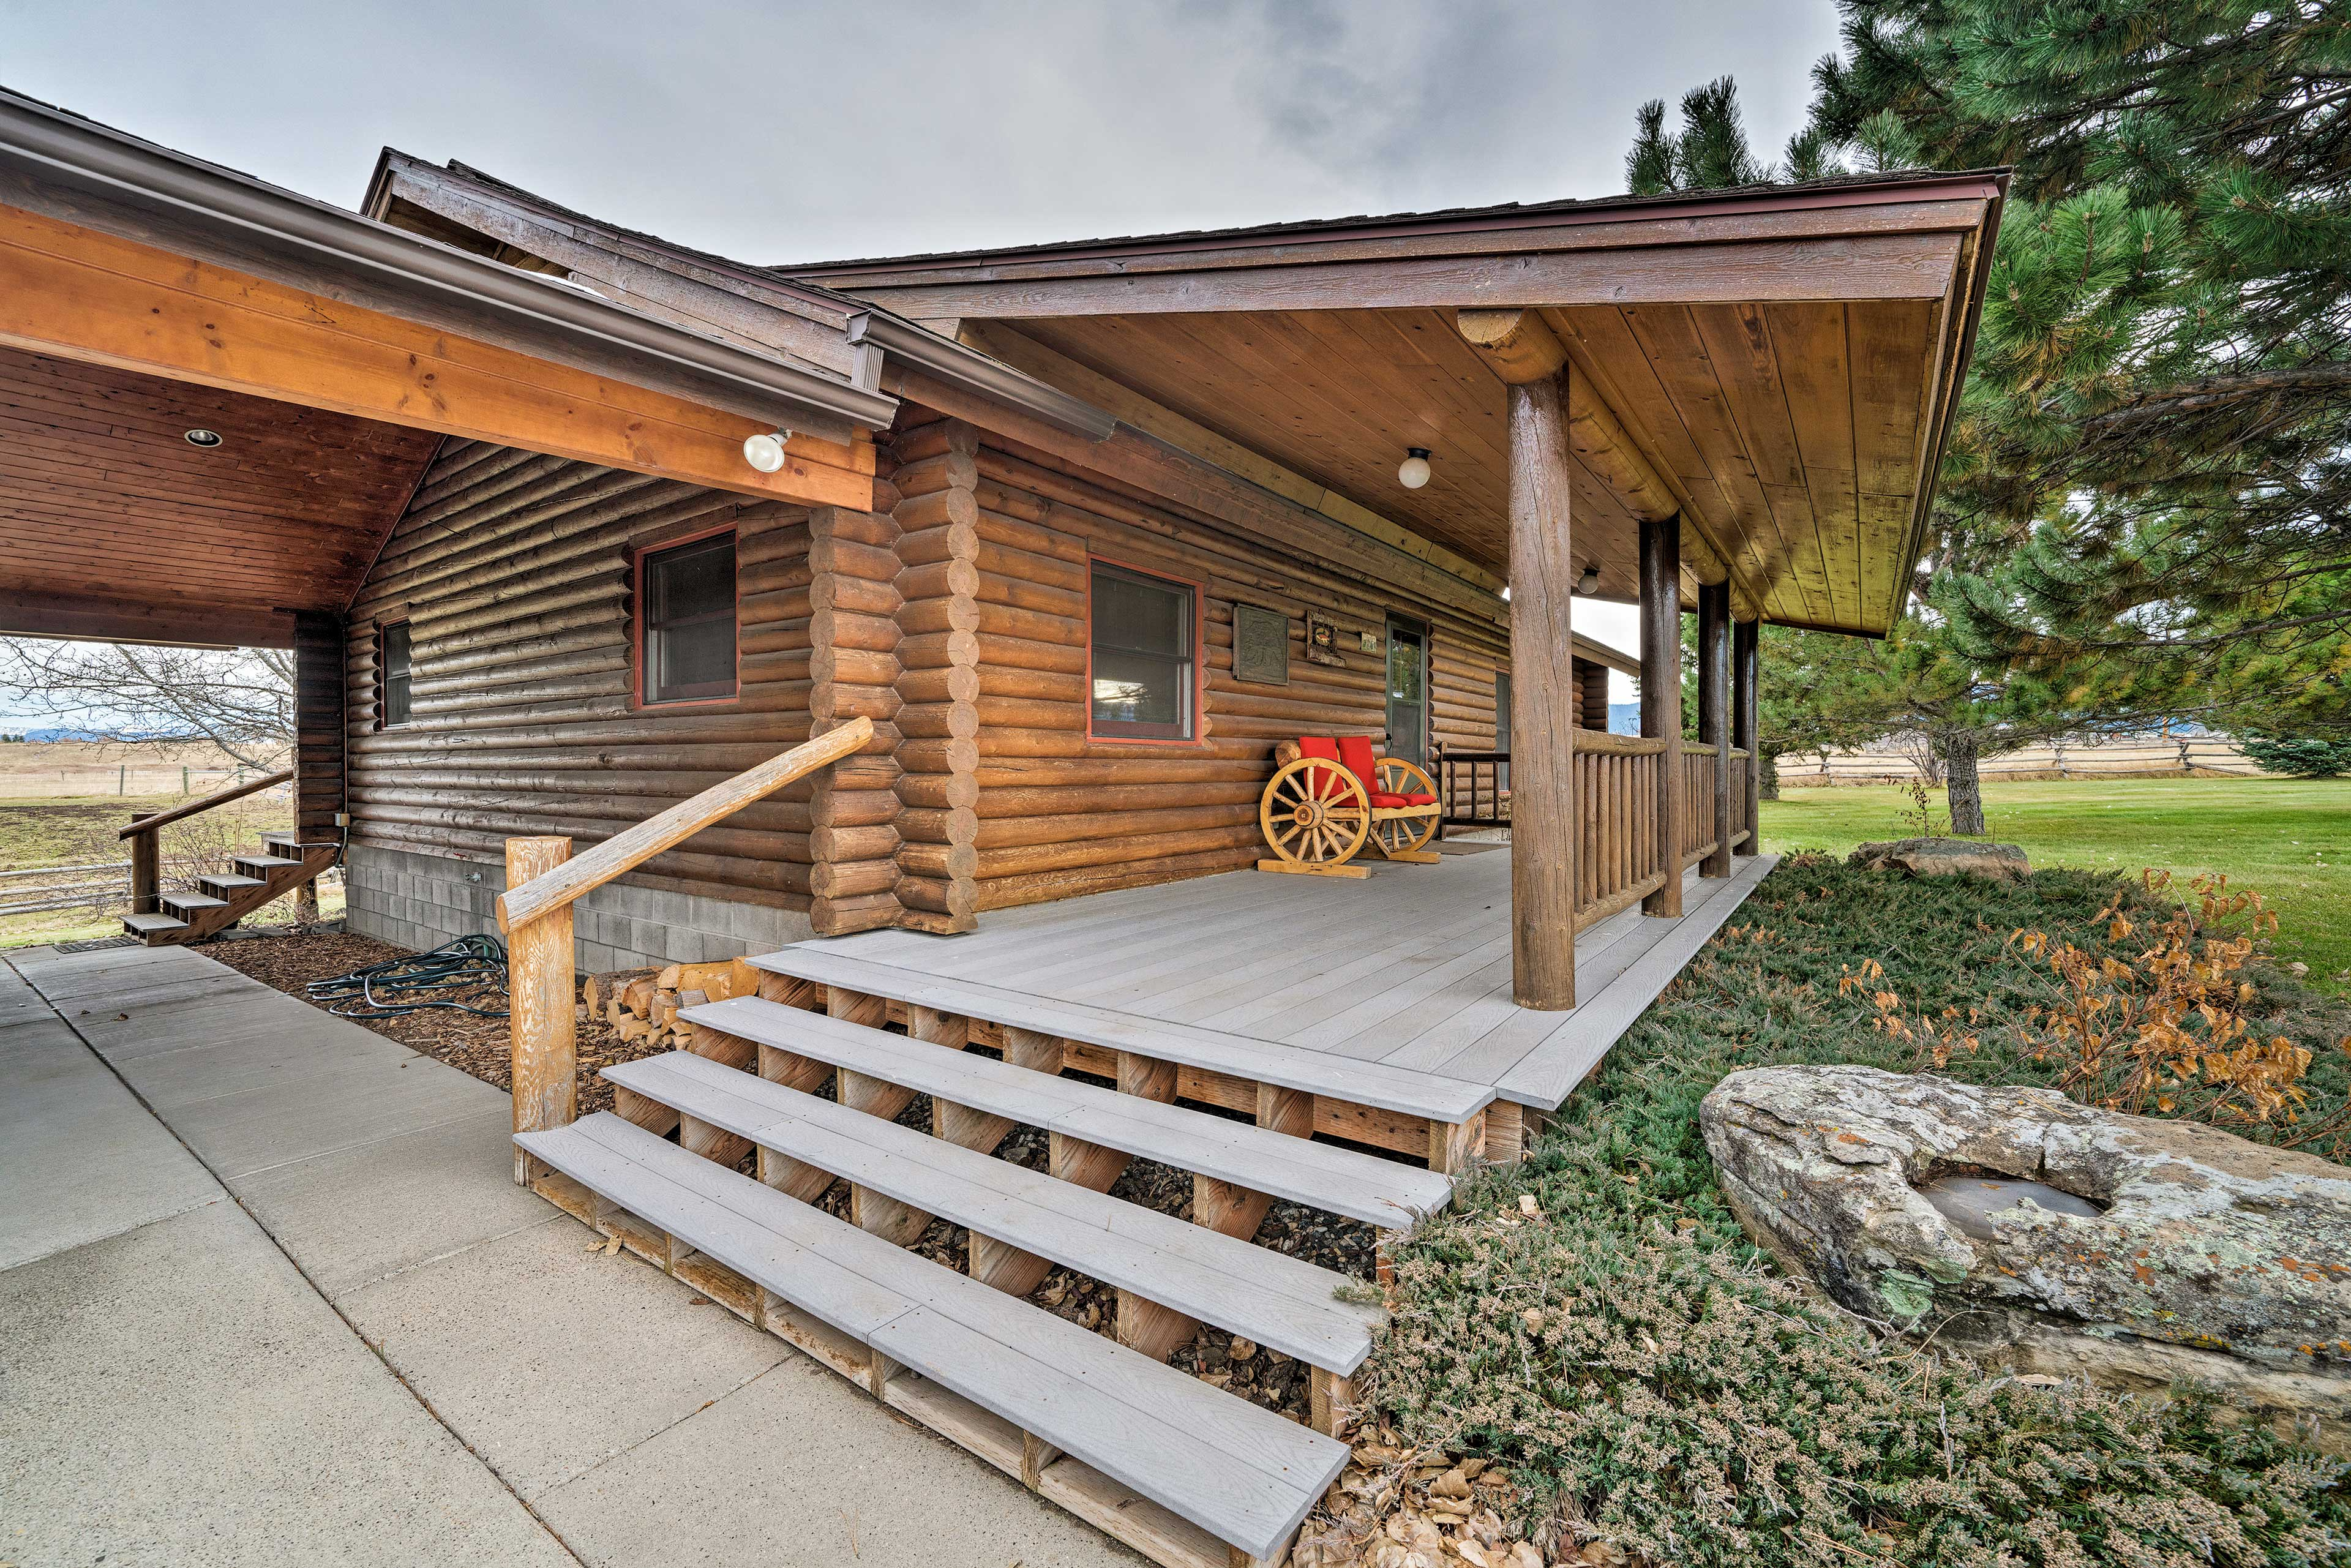 This Gallatin Gateway home is the perfect escape.